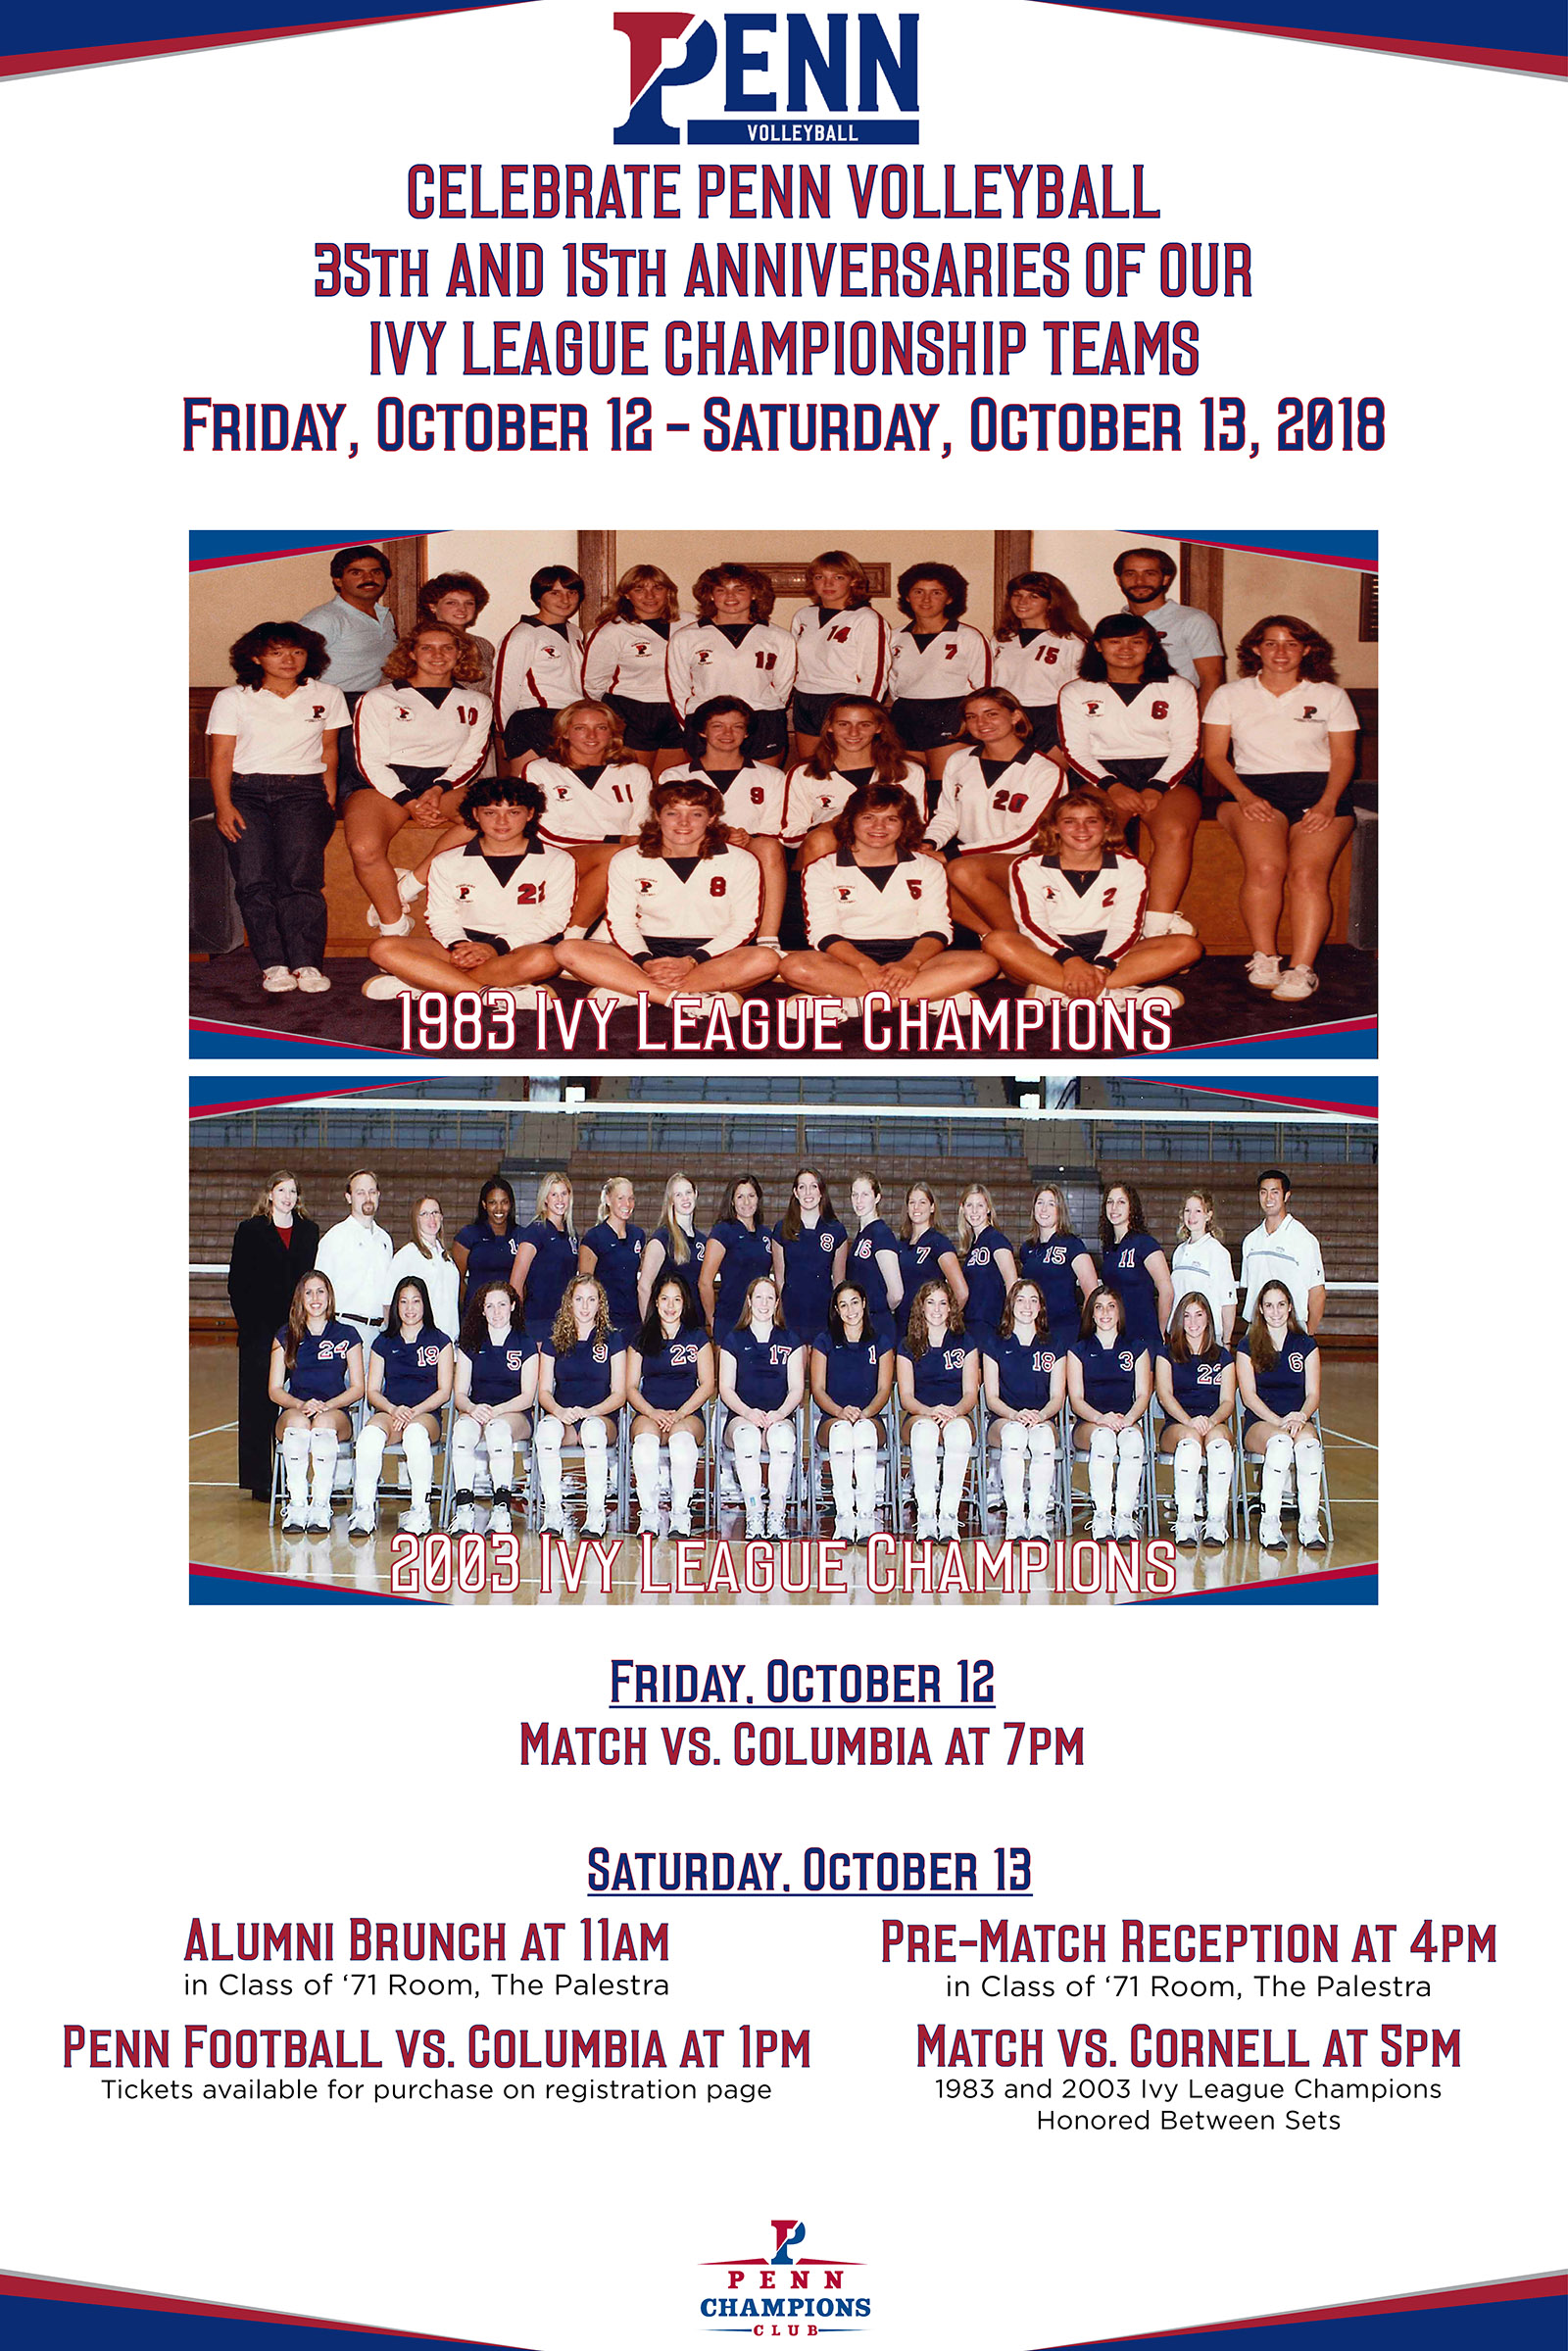 Penn Alumni - Penn Volleyball Celebration of the 35th & 15th